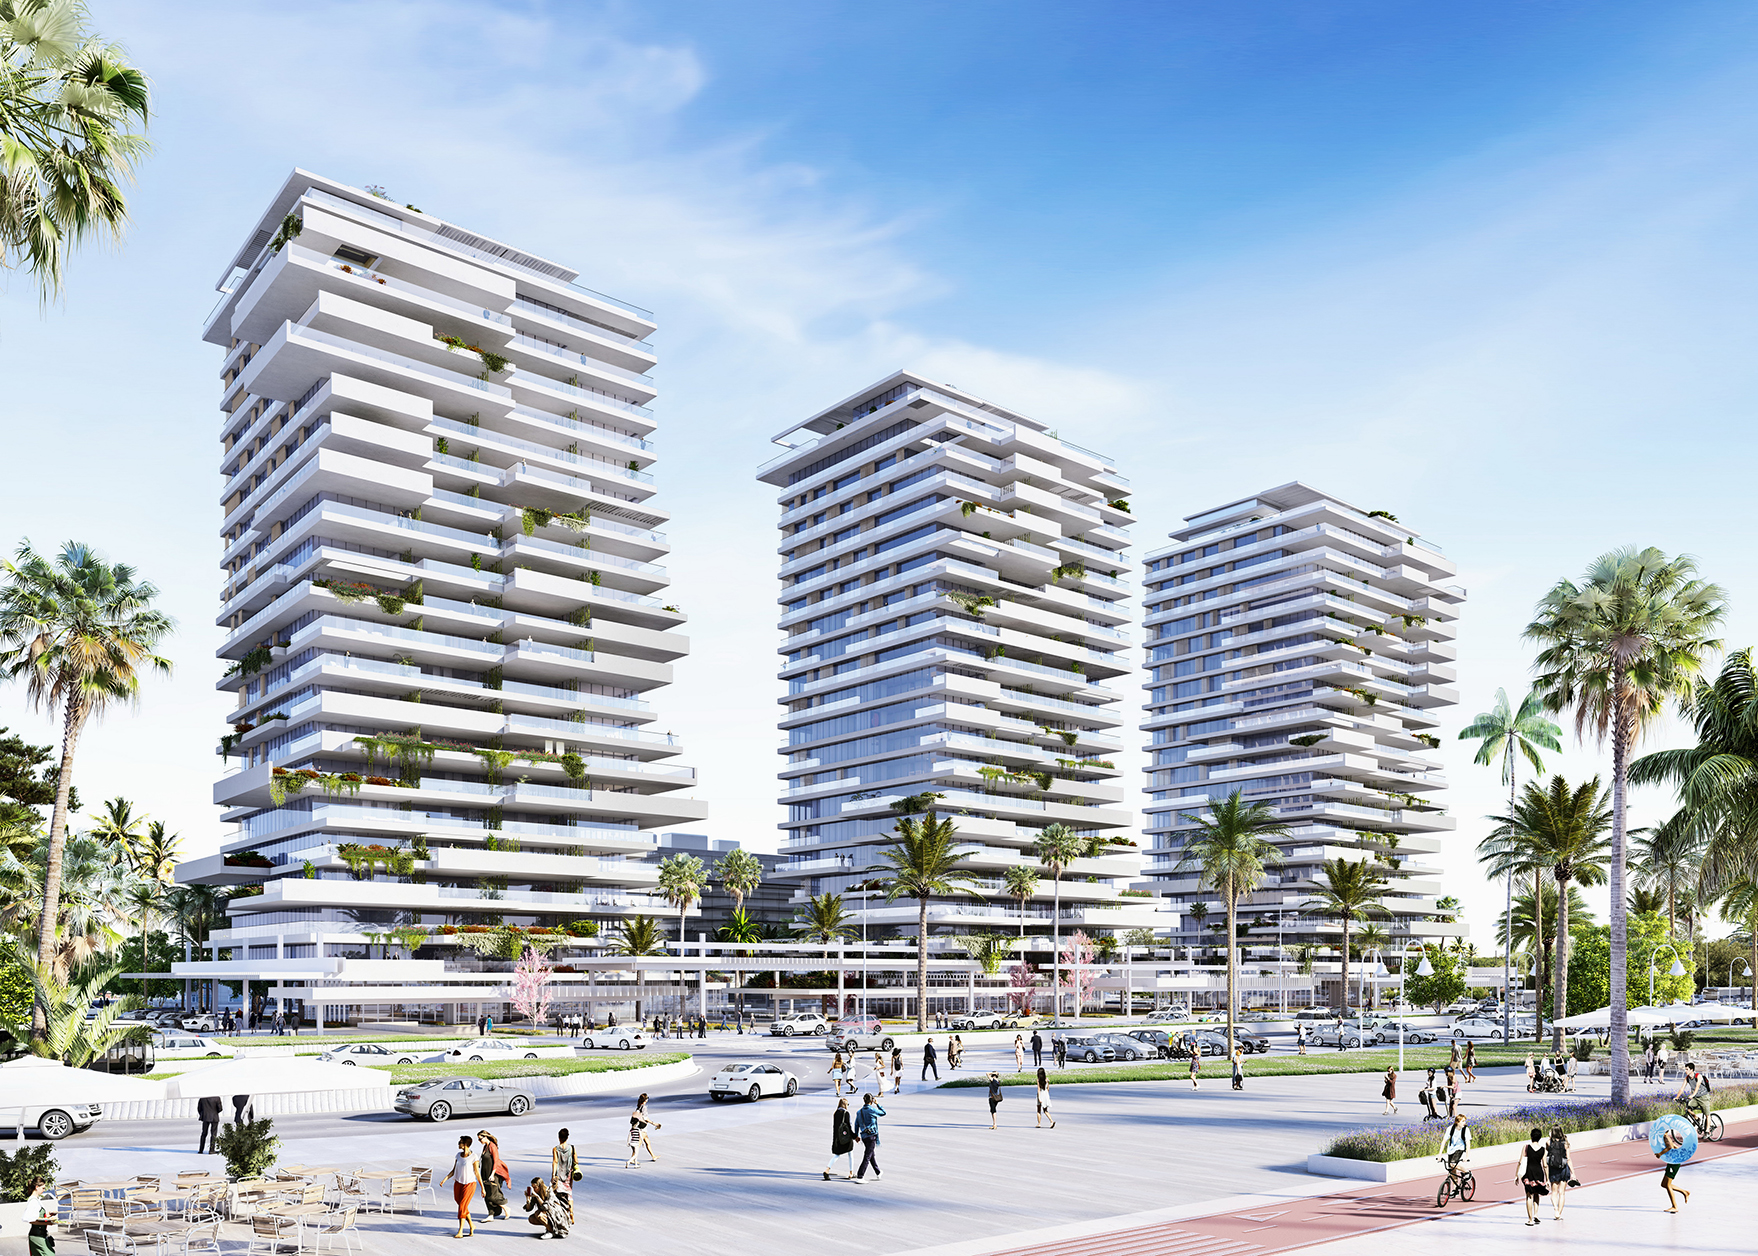 Estudio Lamela has been declared the winners by Metrovacesa to design one of the iconic apartment buildings of Málaga.